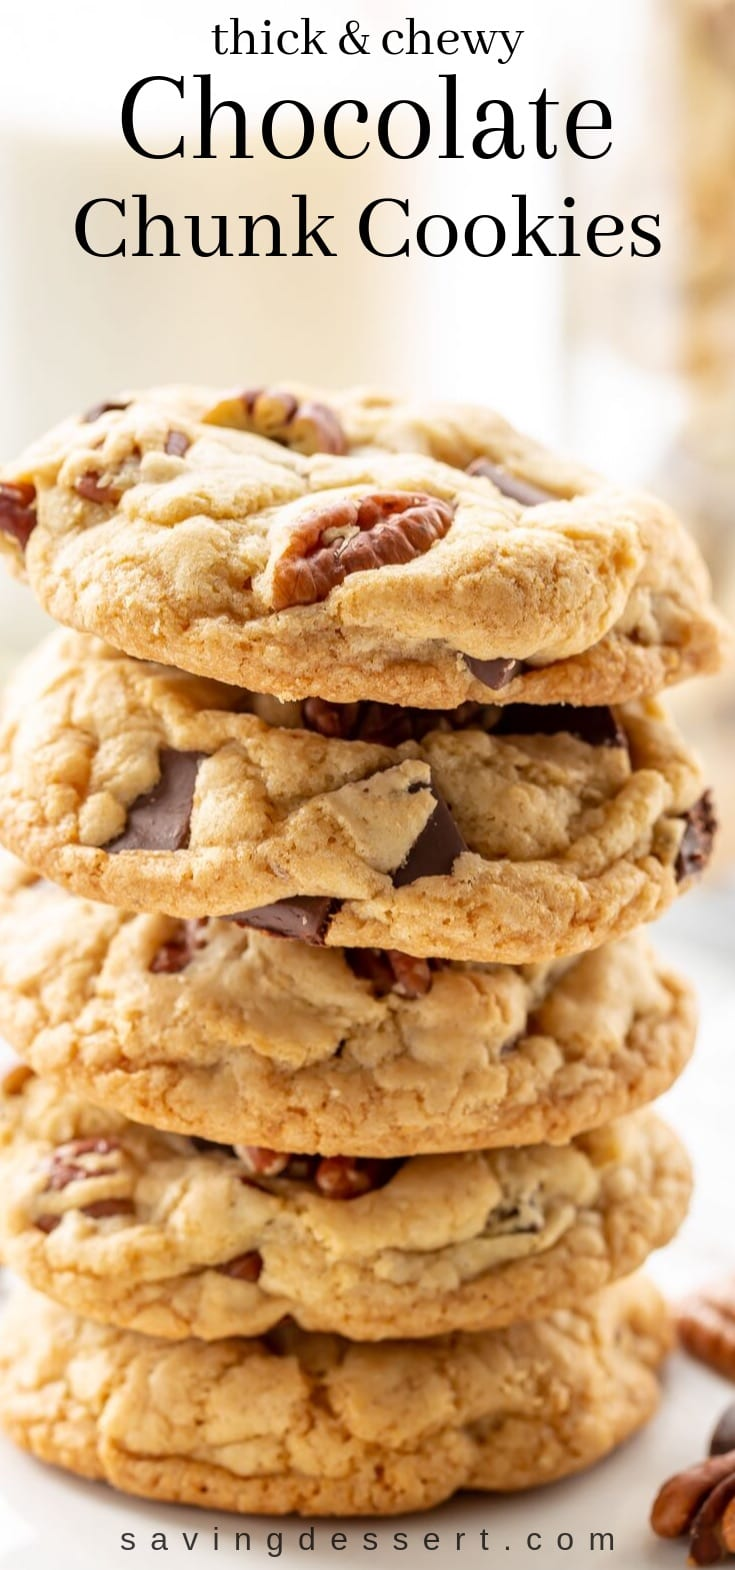 A stack of thick and chewy chocolate chunk cookies with pecans